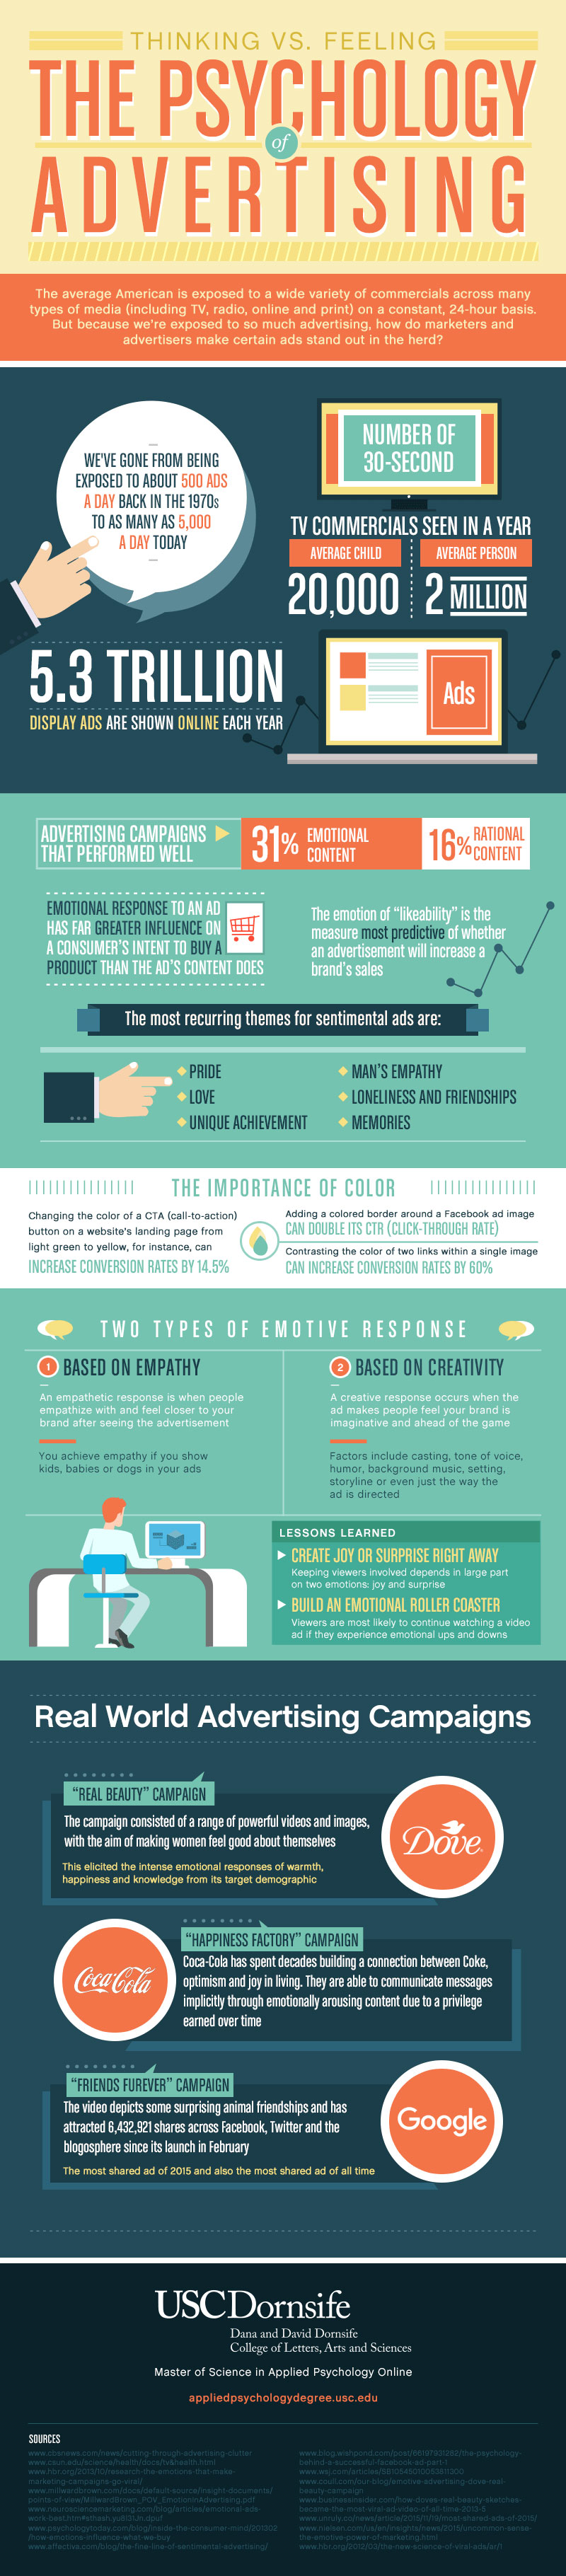 Thinking vs Feeling: The Psychology of Advertising Infographic